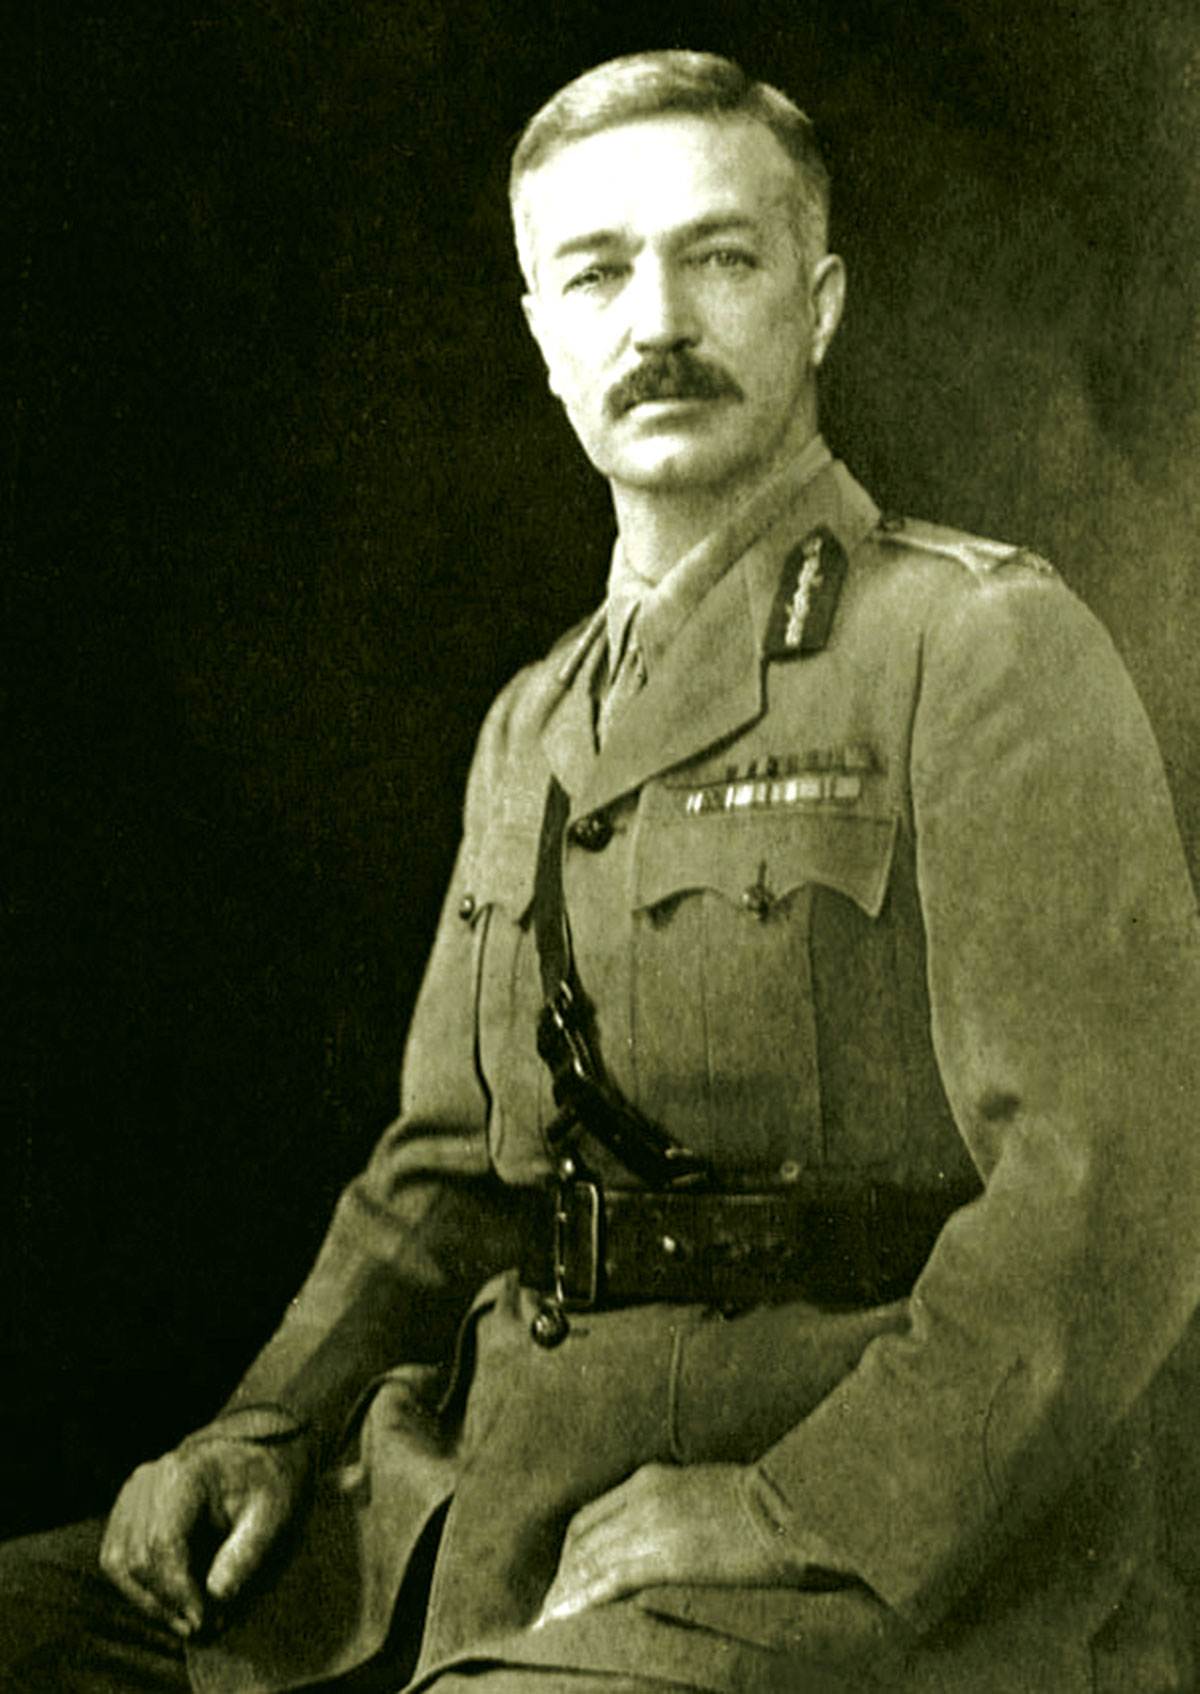 General Dyer